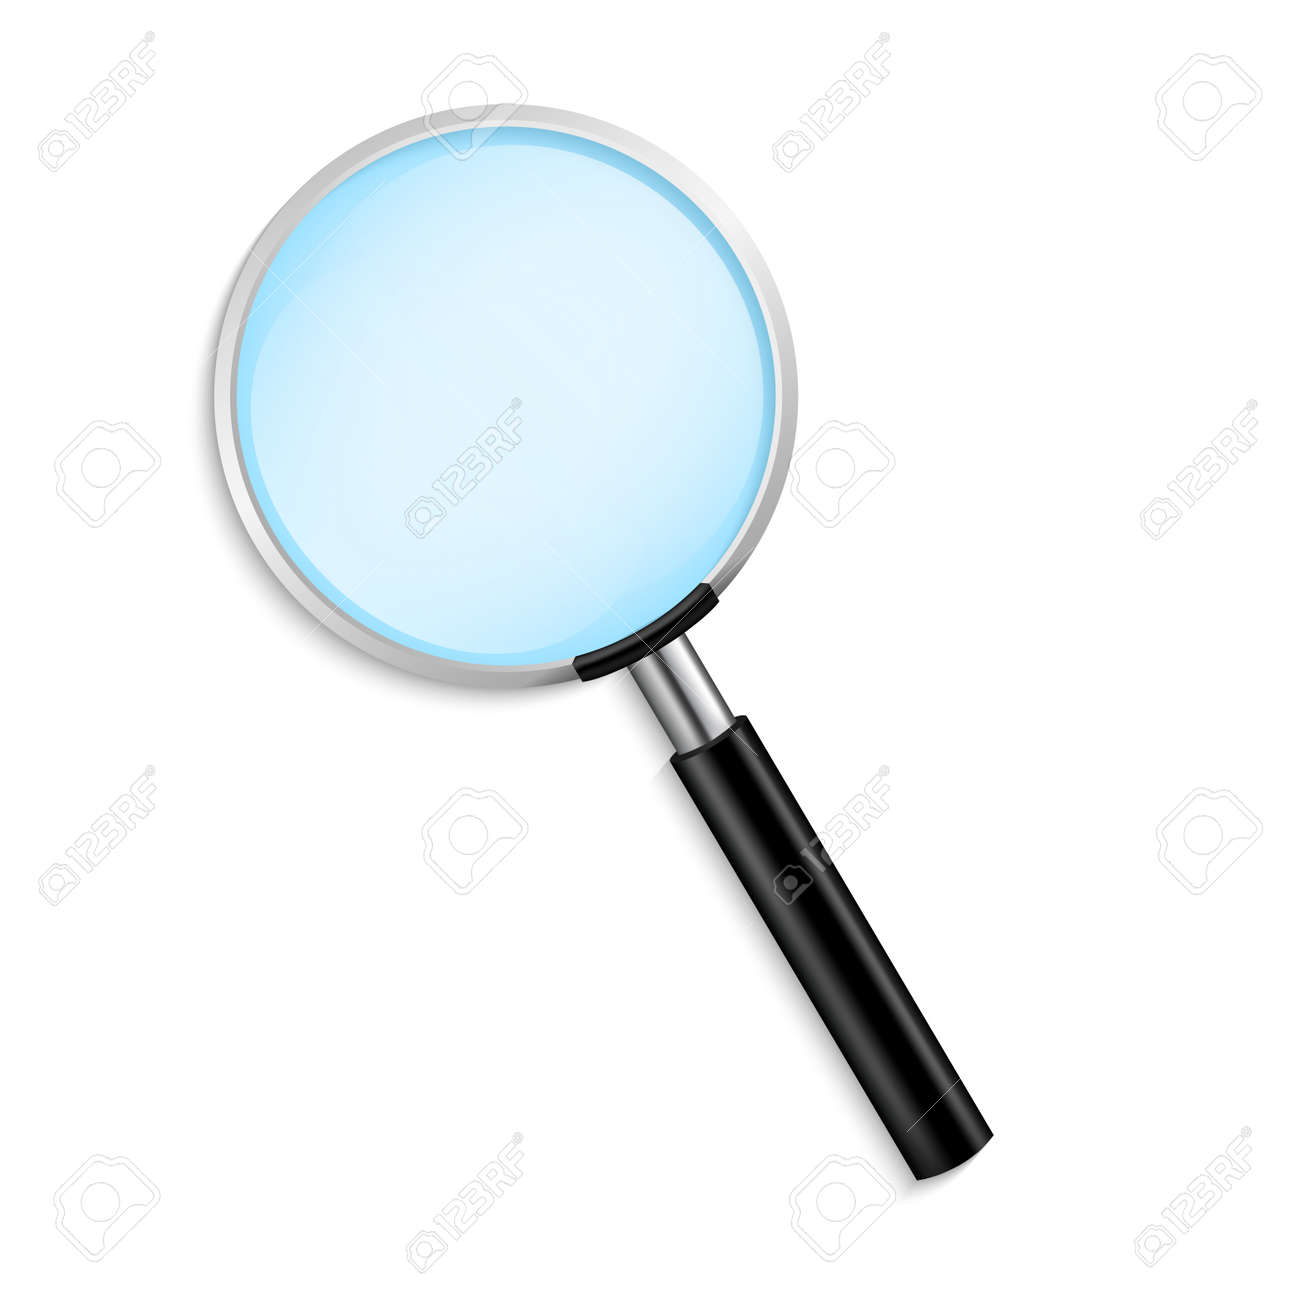 Realistic Magnifying glass vector isolated vector illustration on transparent background - 136038899